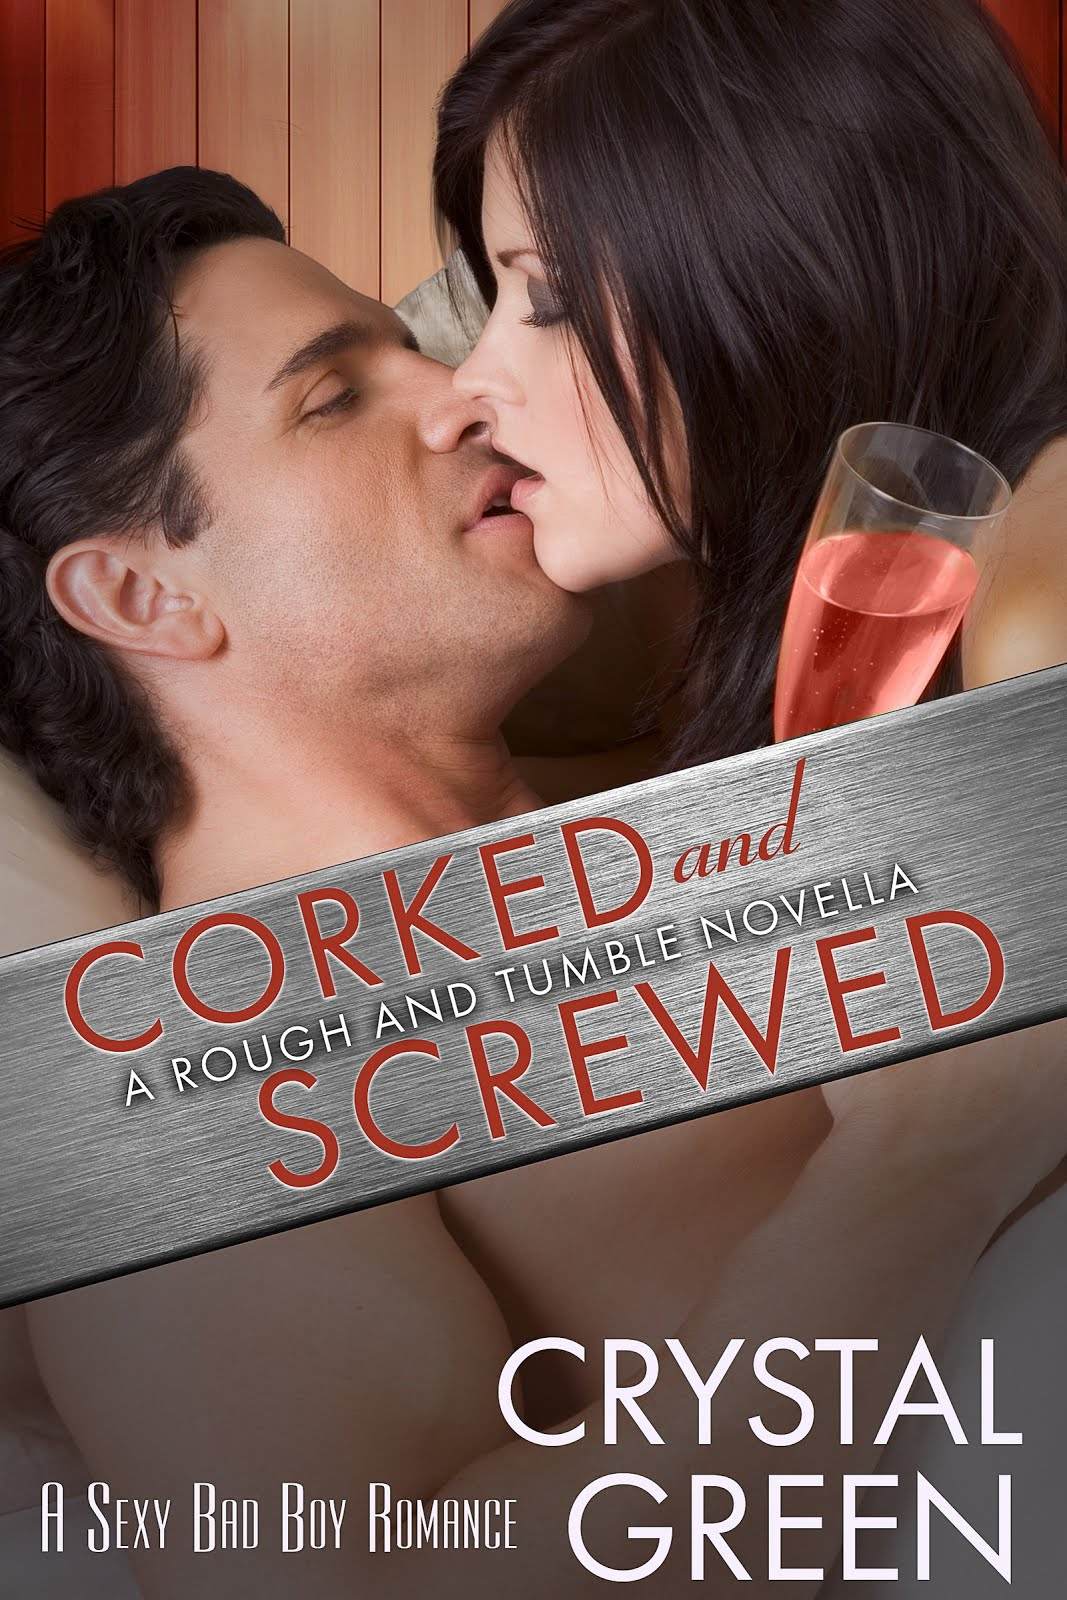 Corked and Screwed by Crystal Green